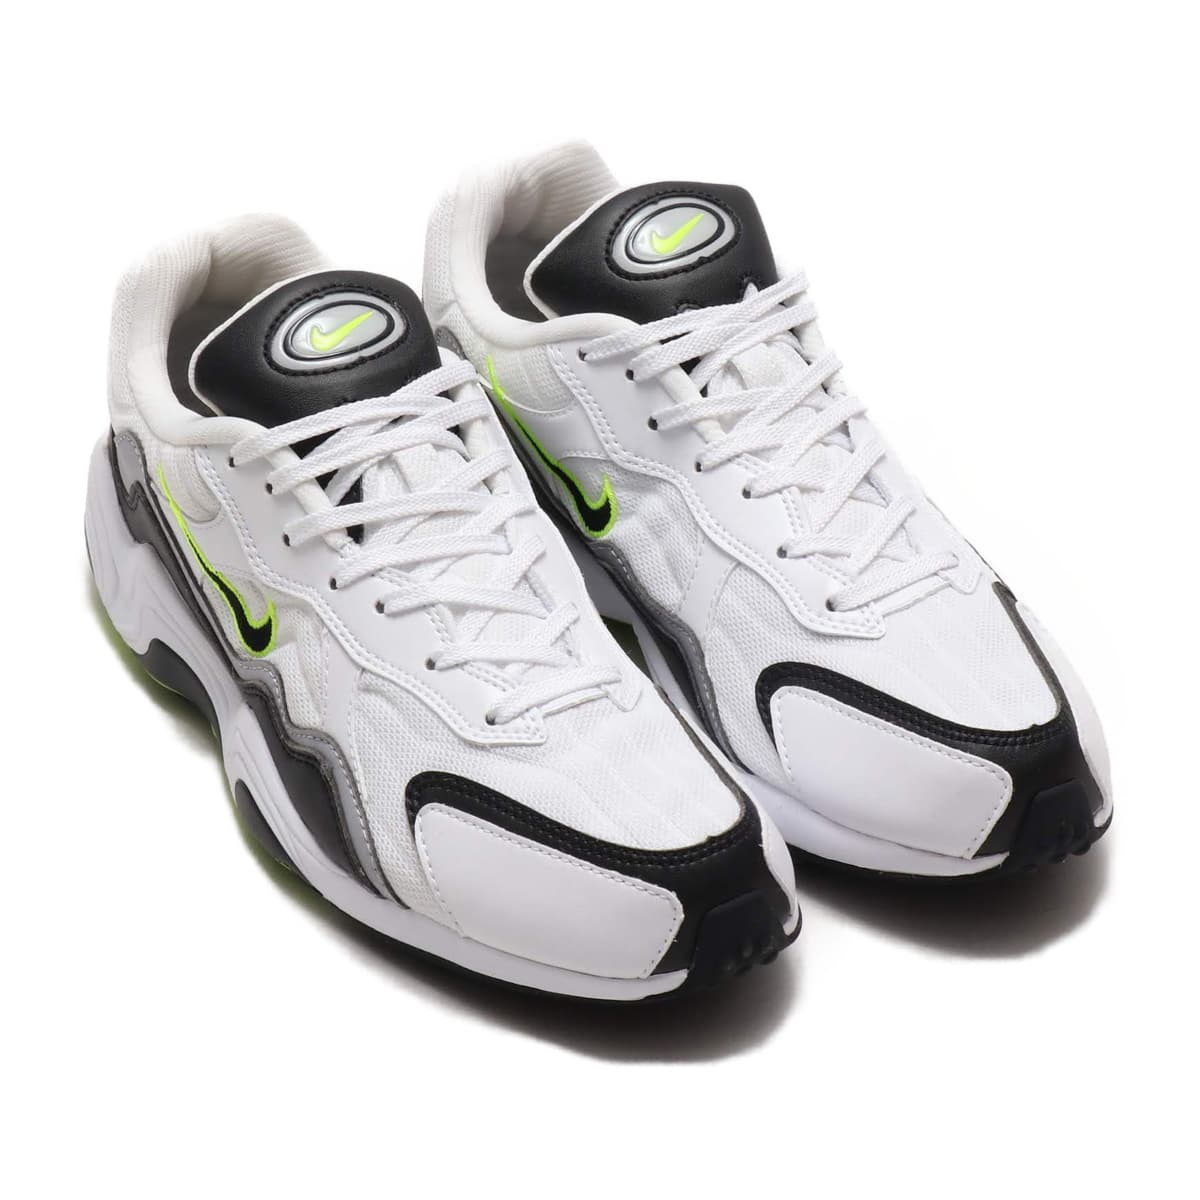 info for 56147 f34c2 NIKE AIR ZOOM ALPHA BLACK VOLT-WOLF GREY-WHITE 19SU-S